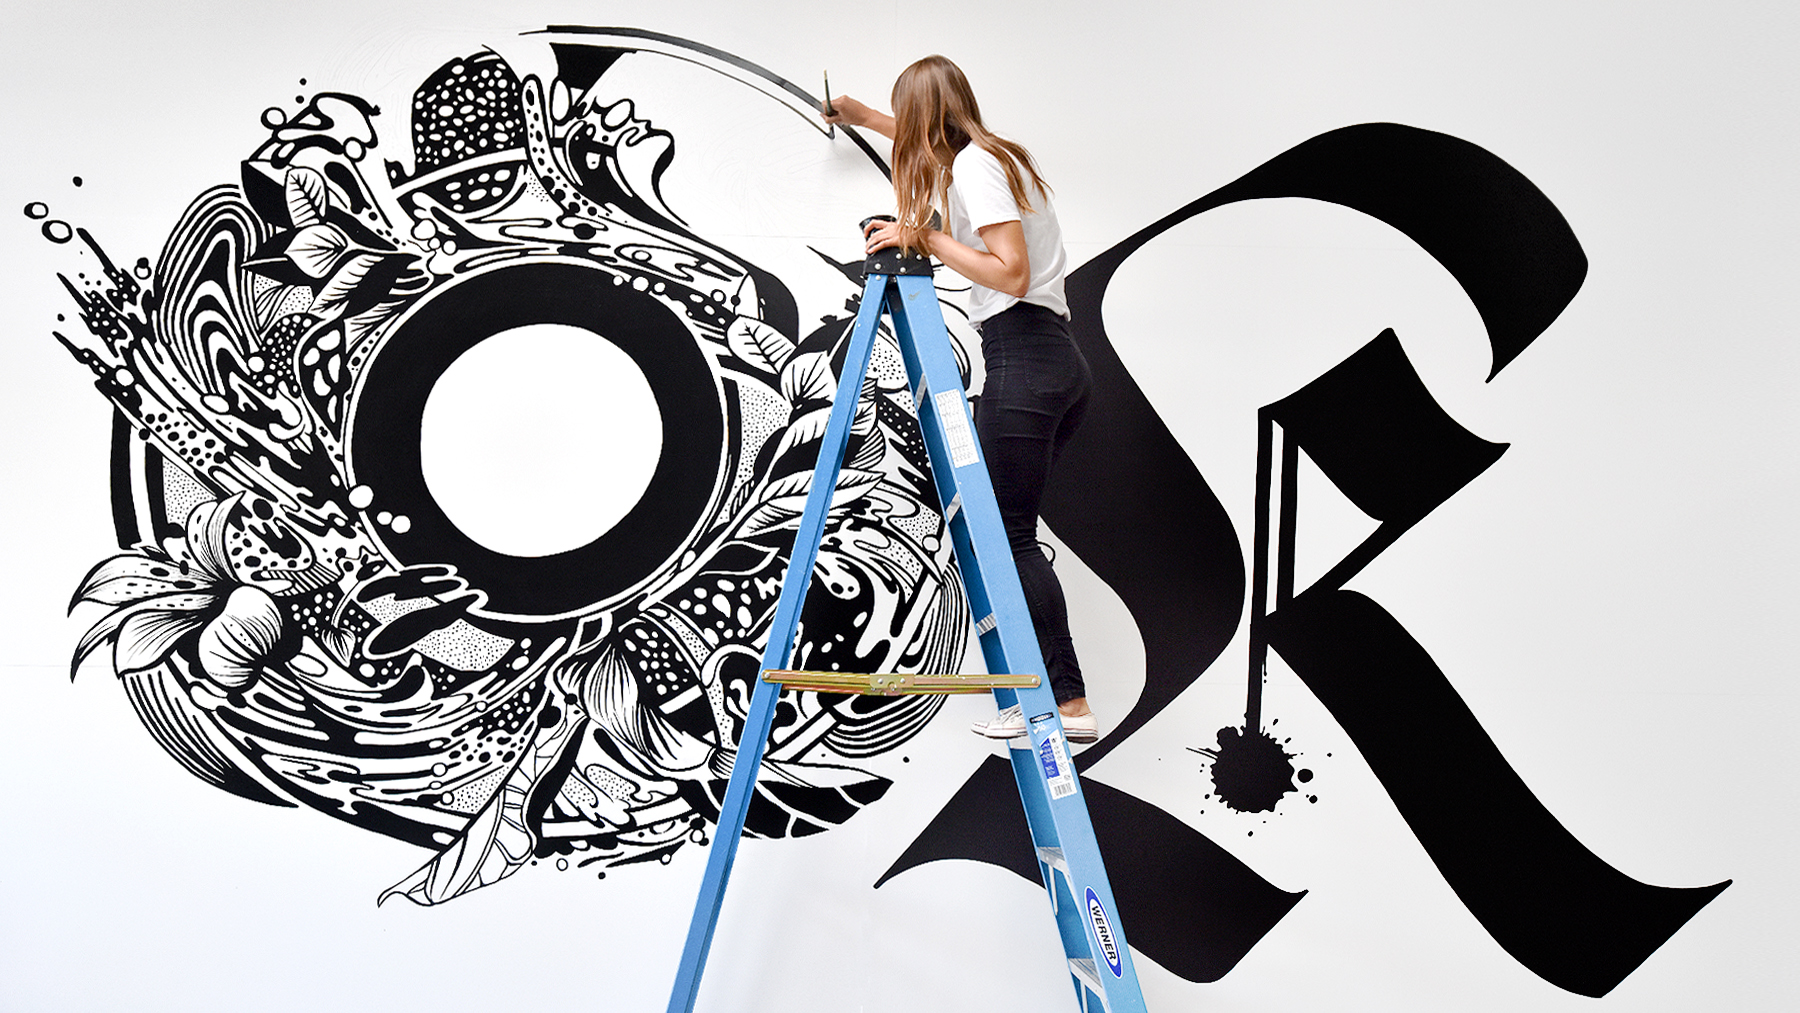 Typography becomes art in the hands of Gemma O´Brien